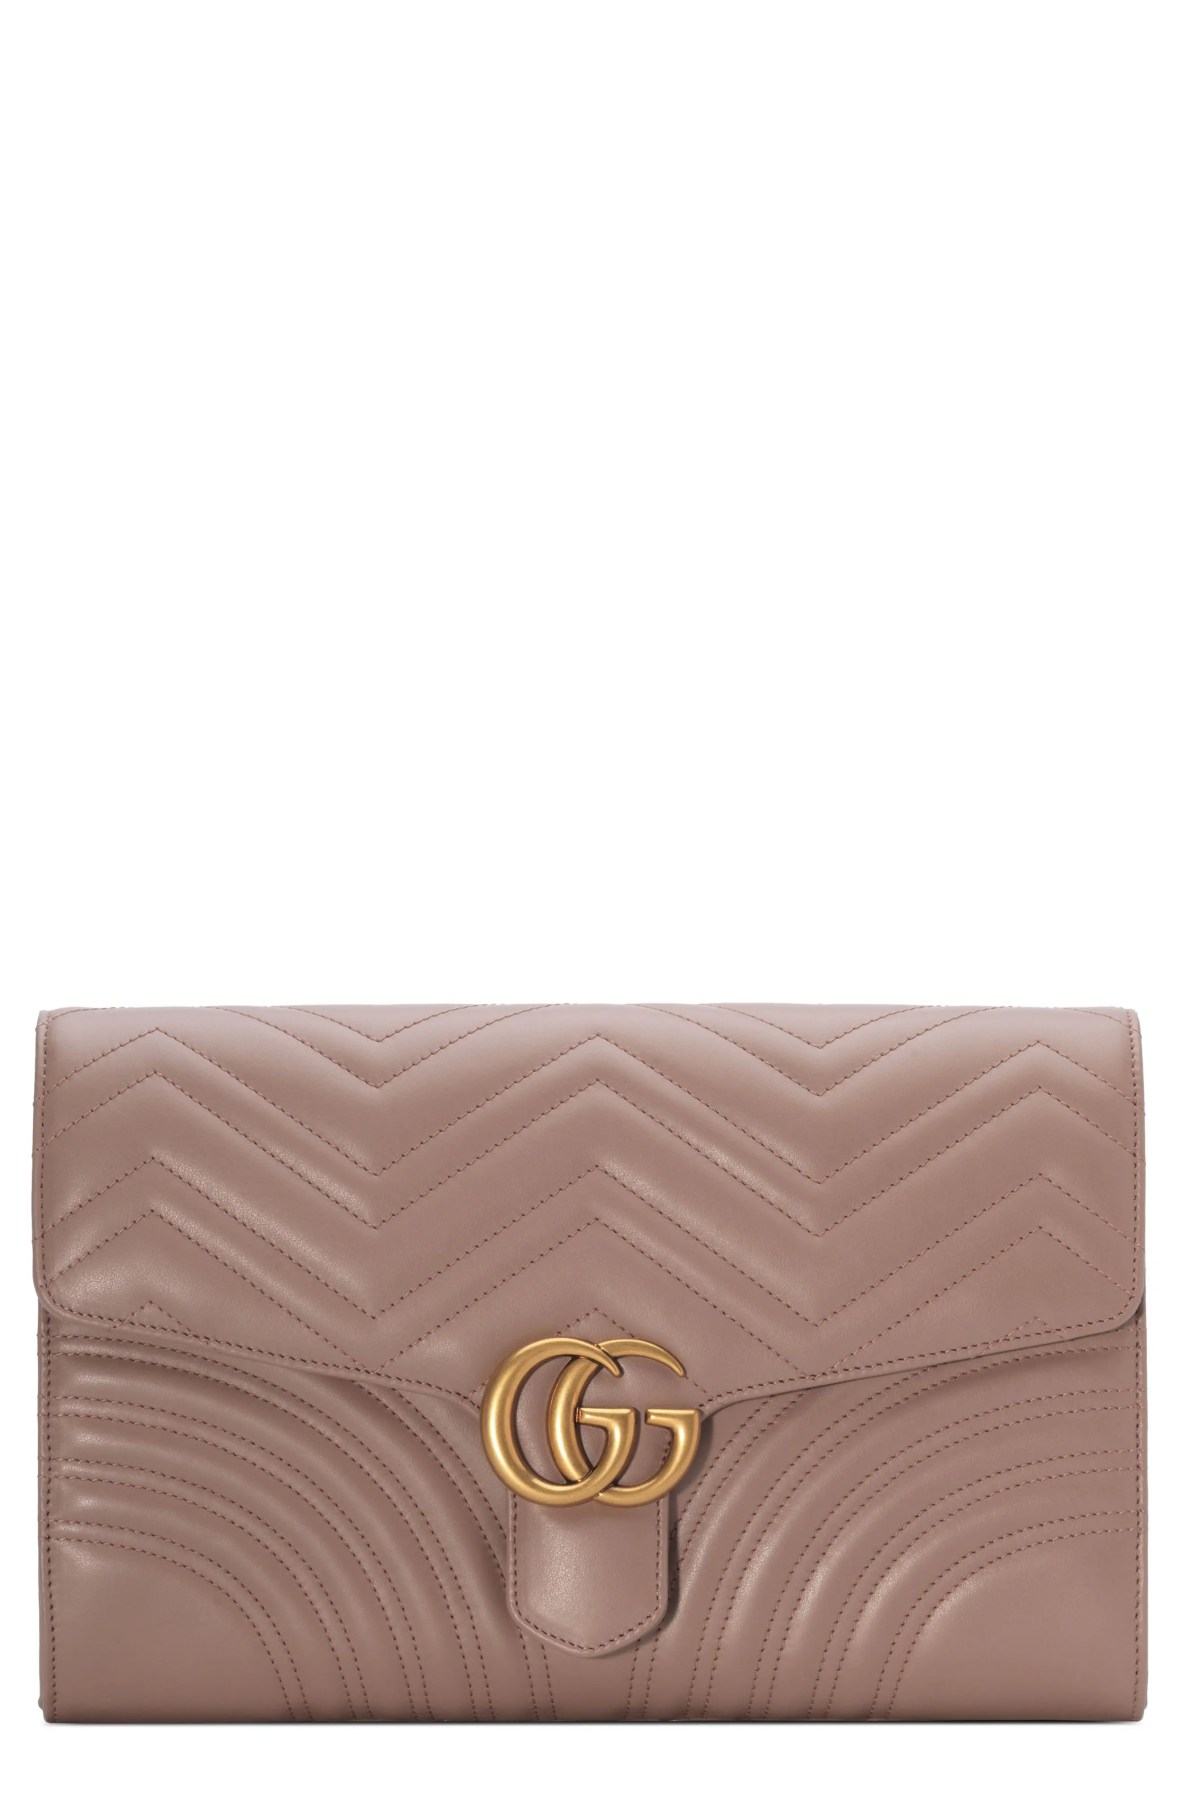 Gucci GG Marmont 2.0 Matelassé Leather Clutch